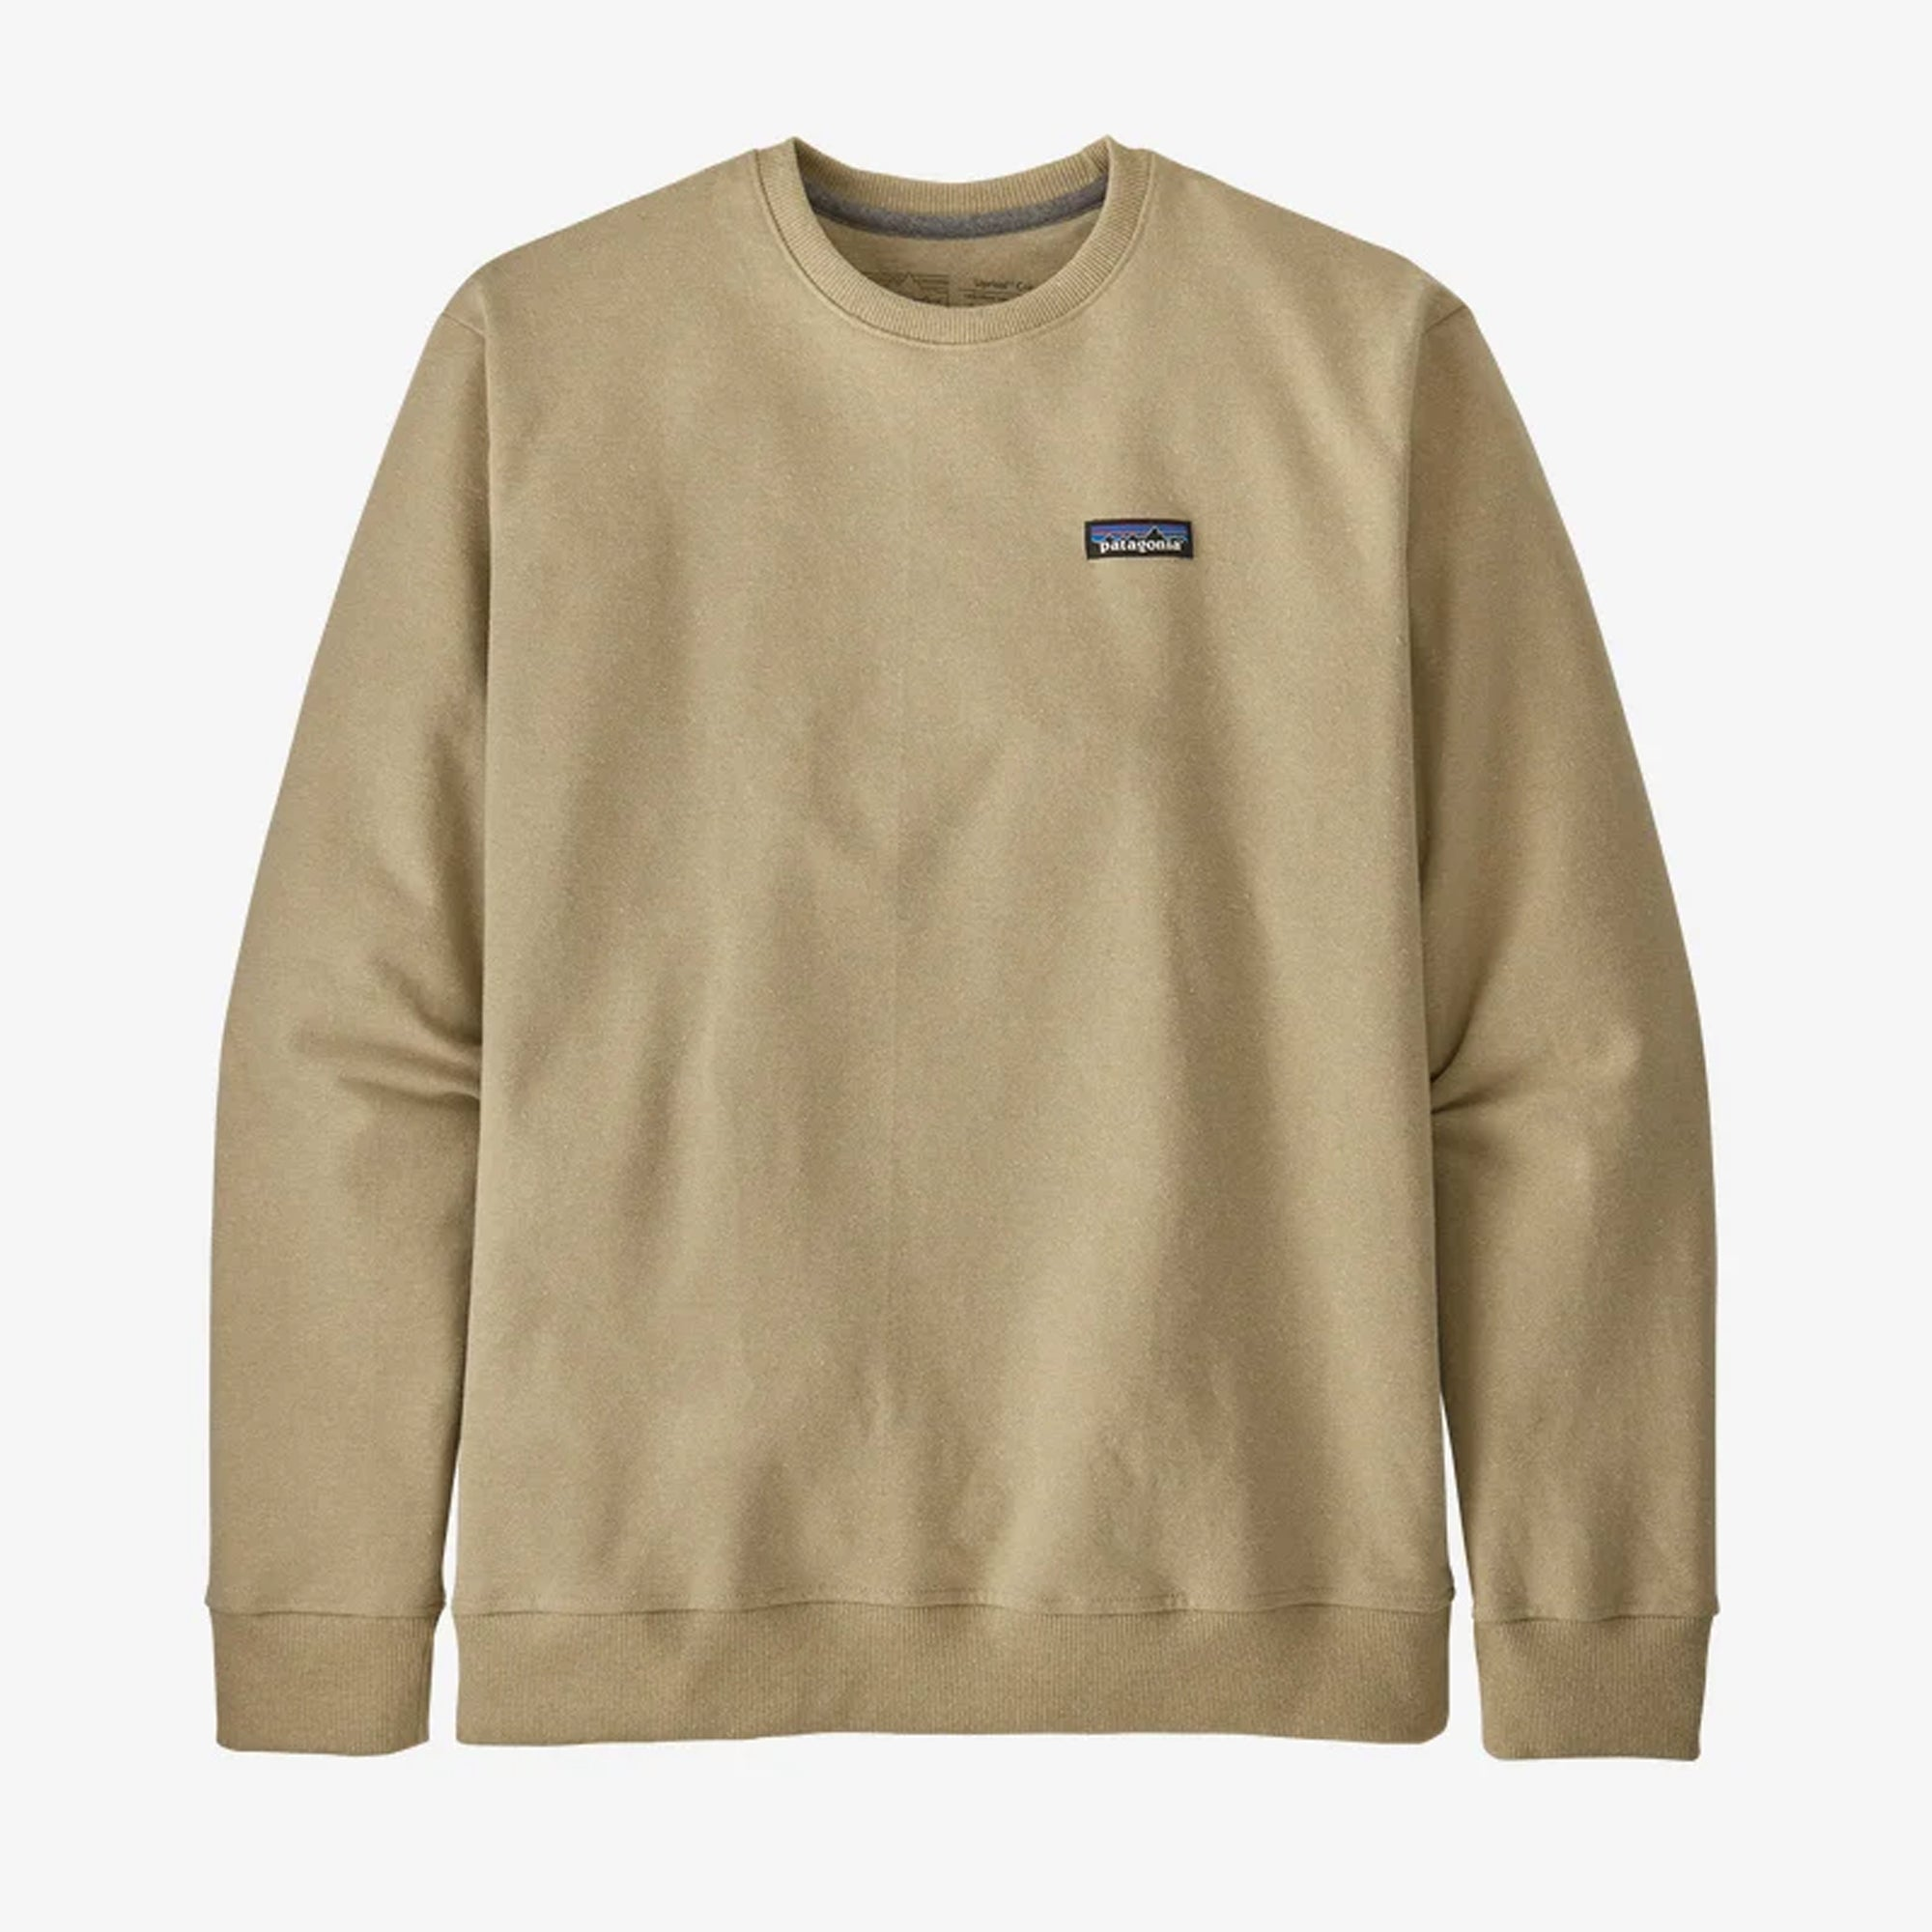 Patagonia P-6 Label Uprisal Men's Crew Sweatshirt